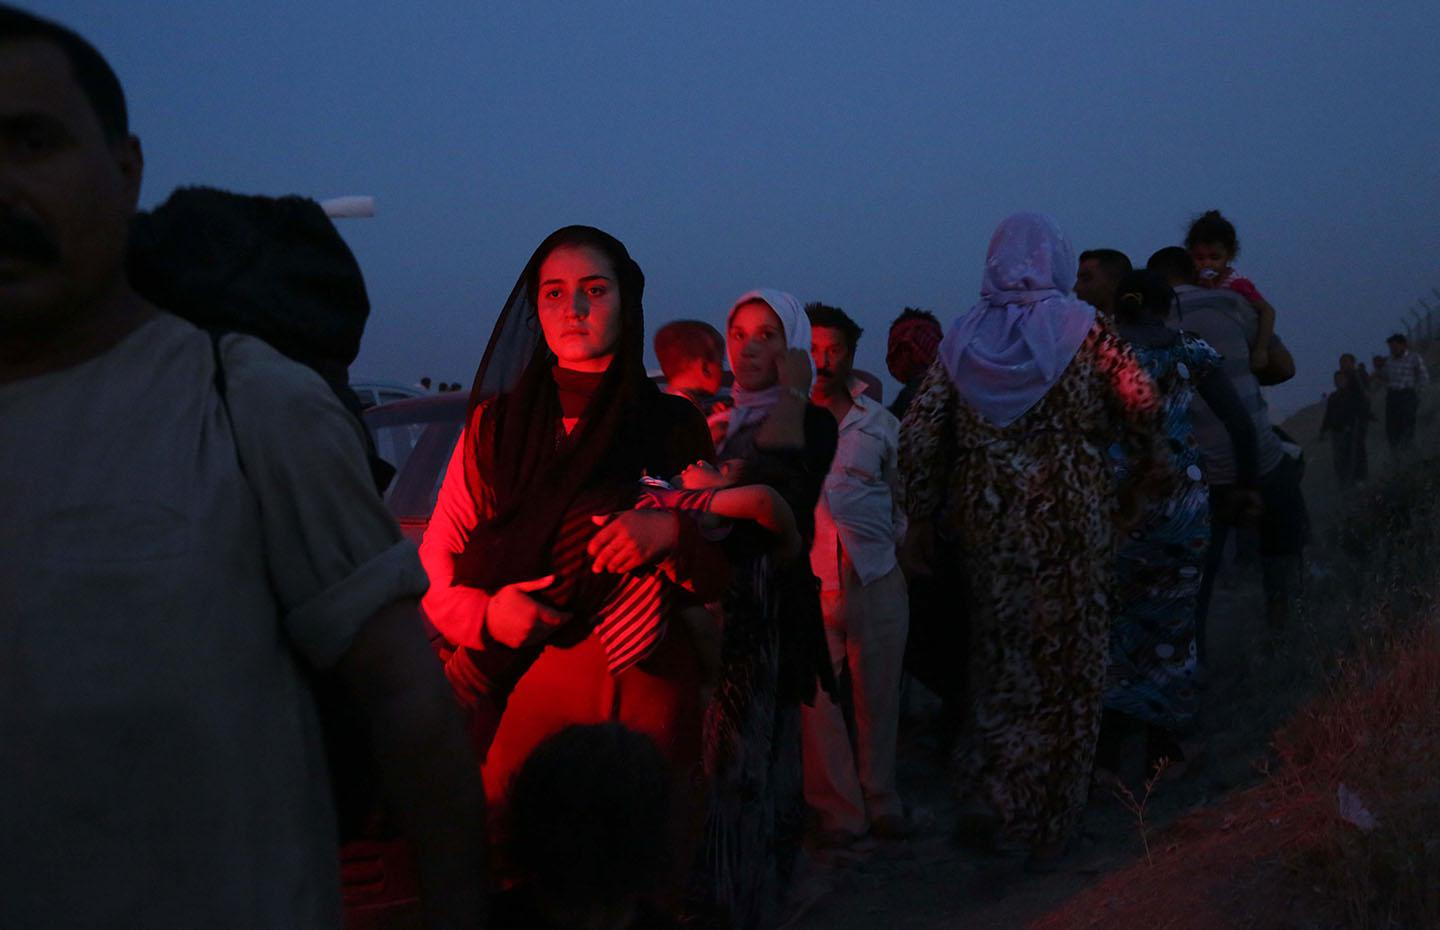 Thousands of Iraqis flee from Sinjar, near the city of Mosul, to Erbil and Dohuk, after armed ISIS groups seized the town early on August 4, 2014.